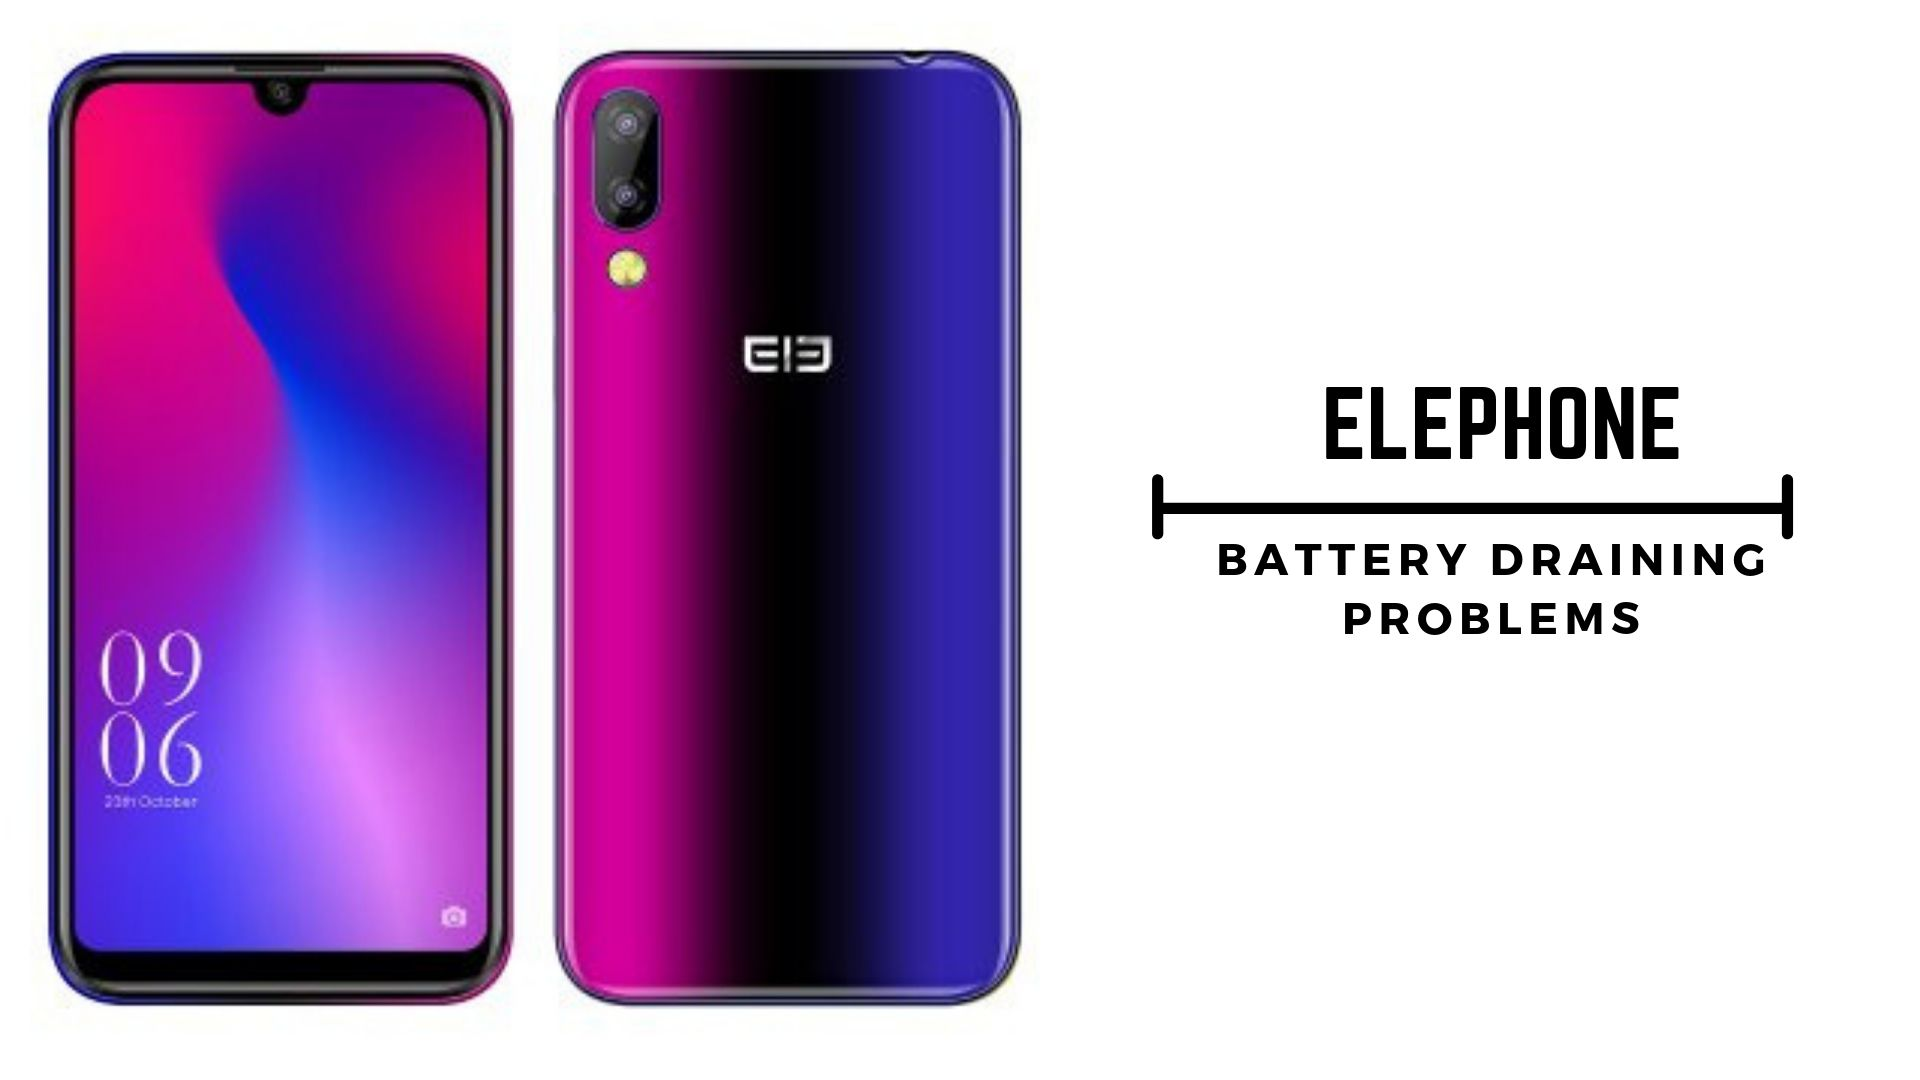 How Fix Elephone Battery Draining Problems - Troubleshooting and Fixes